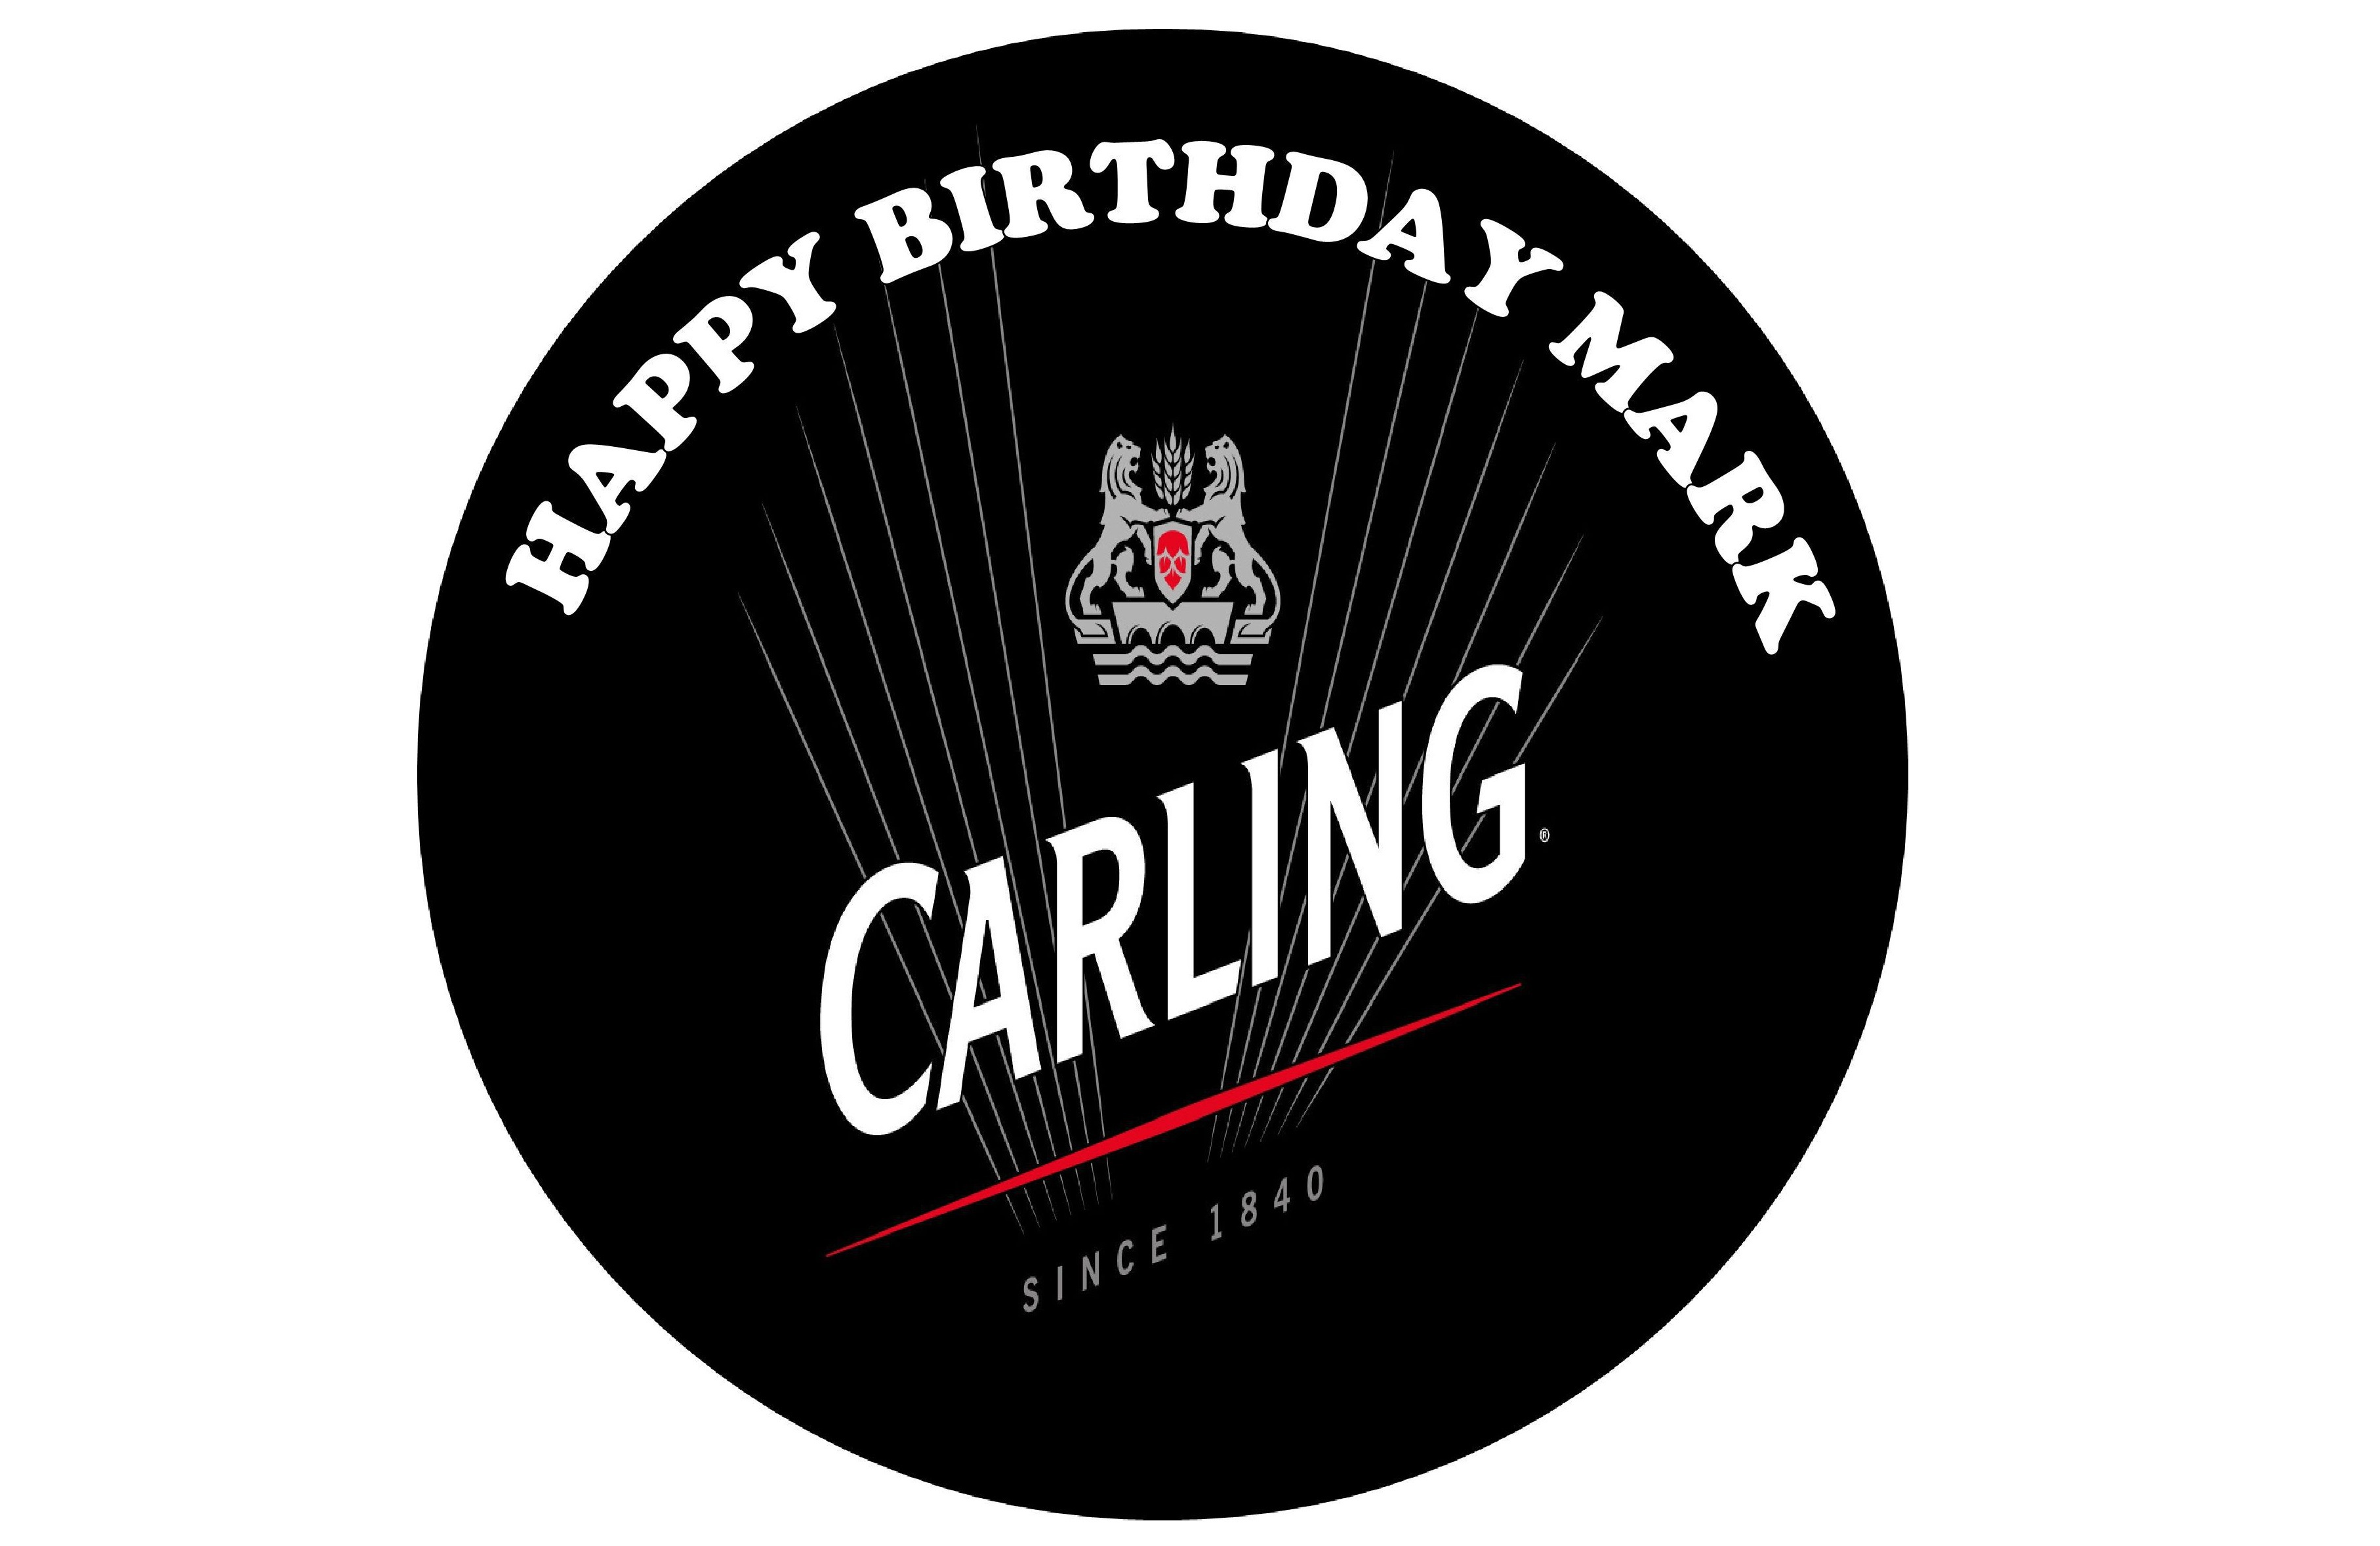 Carling Images